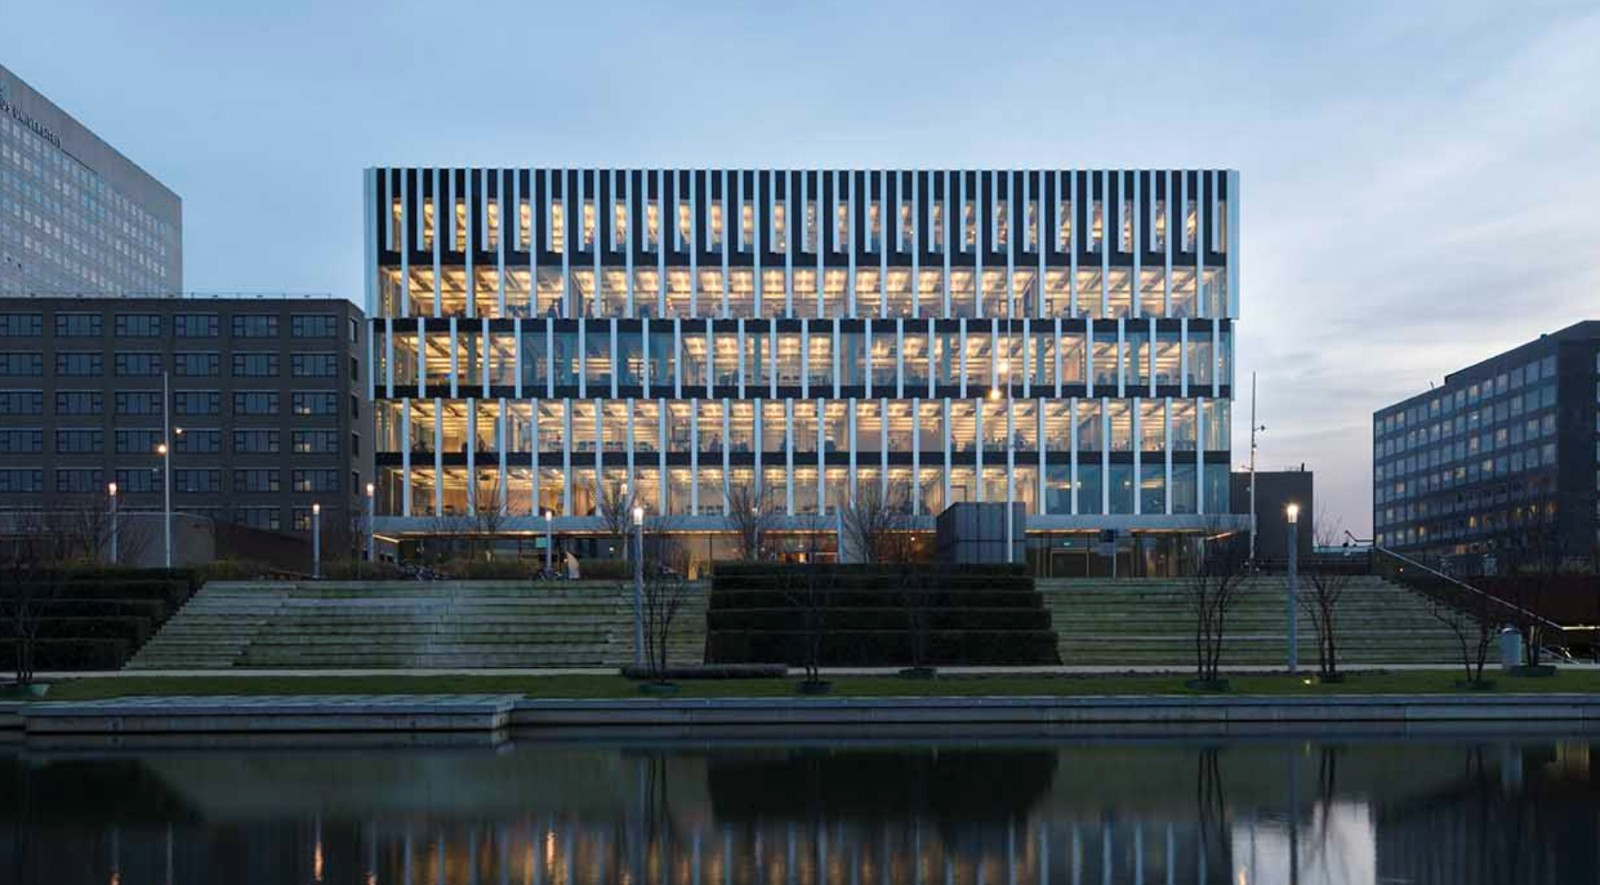 Polak building erasmus university rotterdam by paul de for Architecture 00